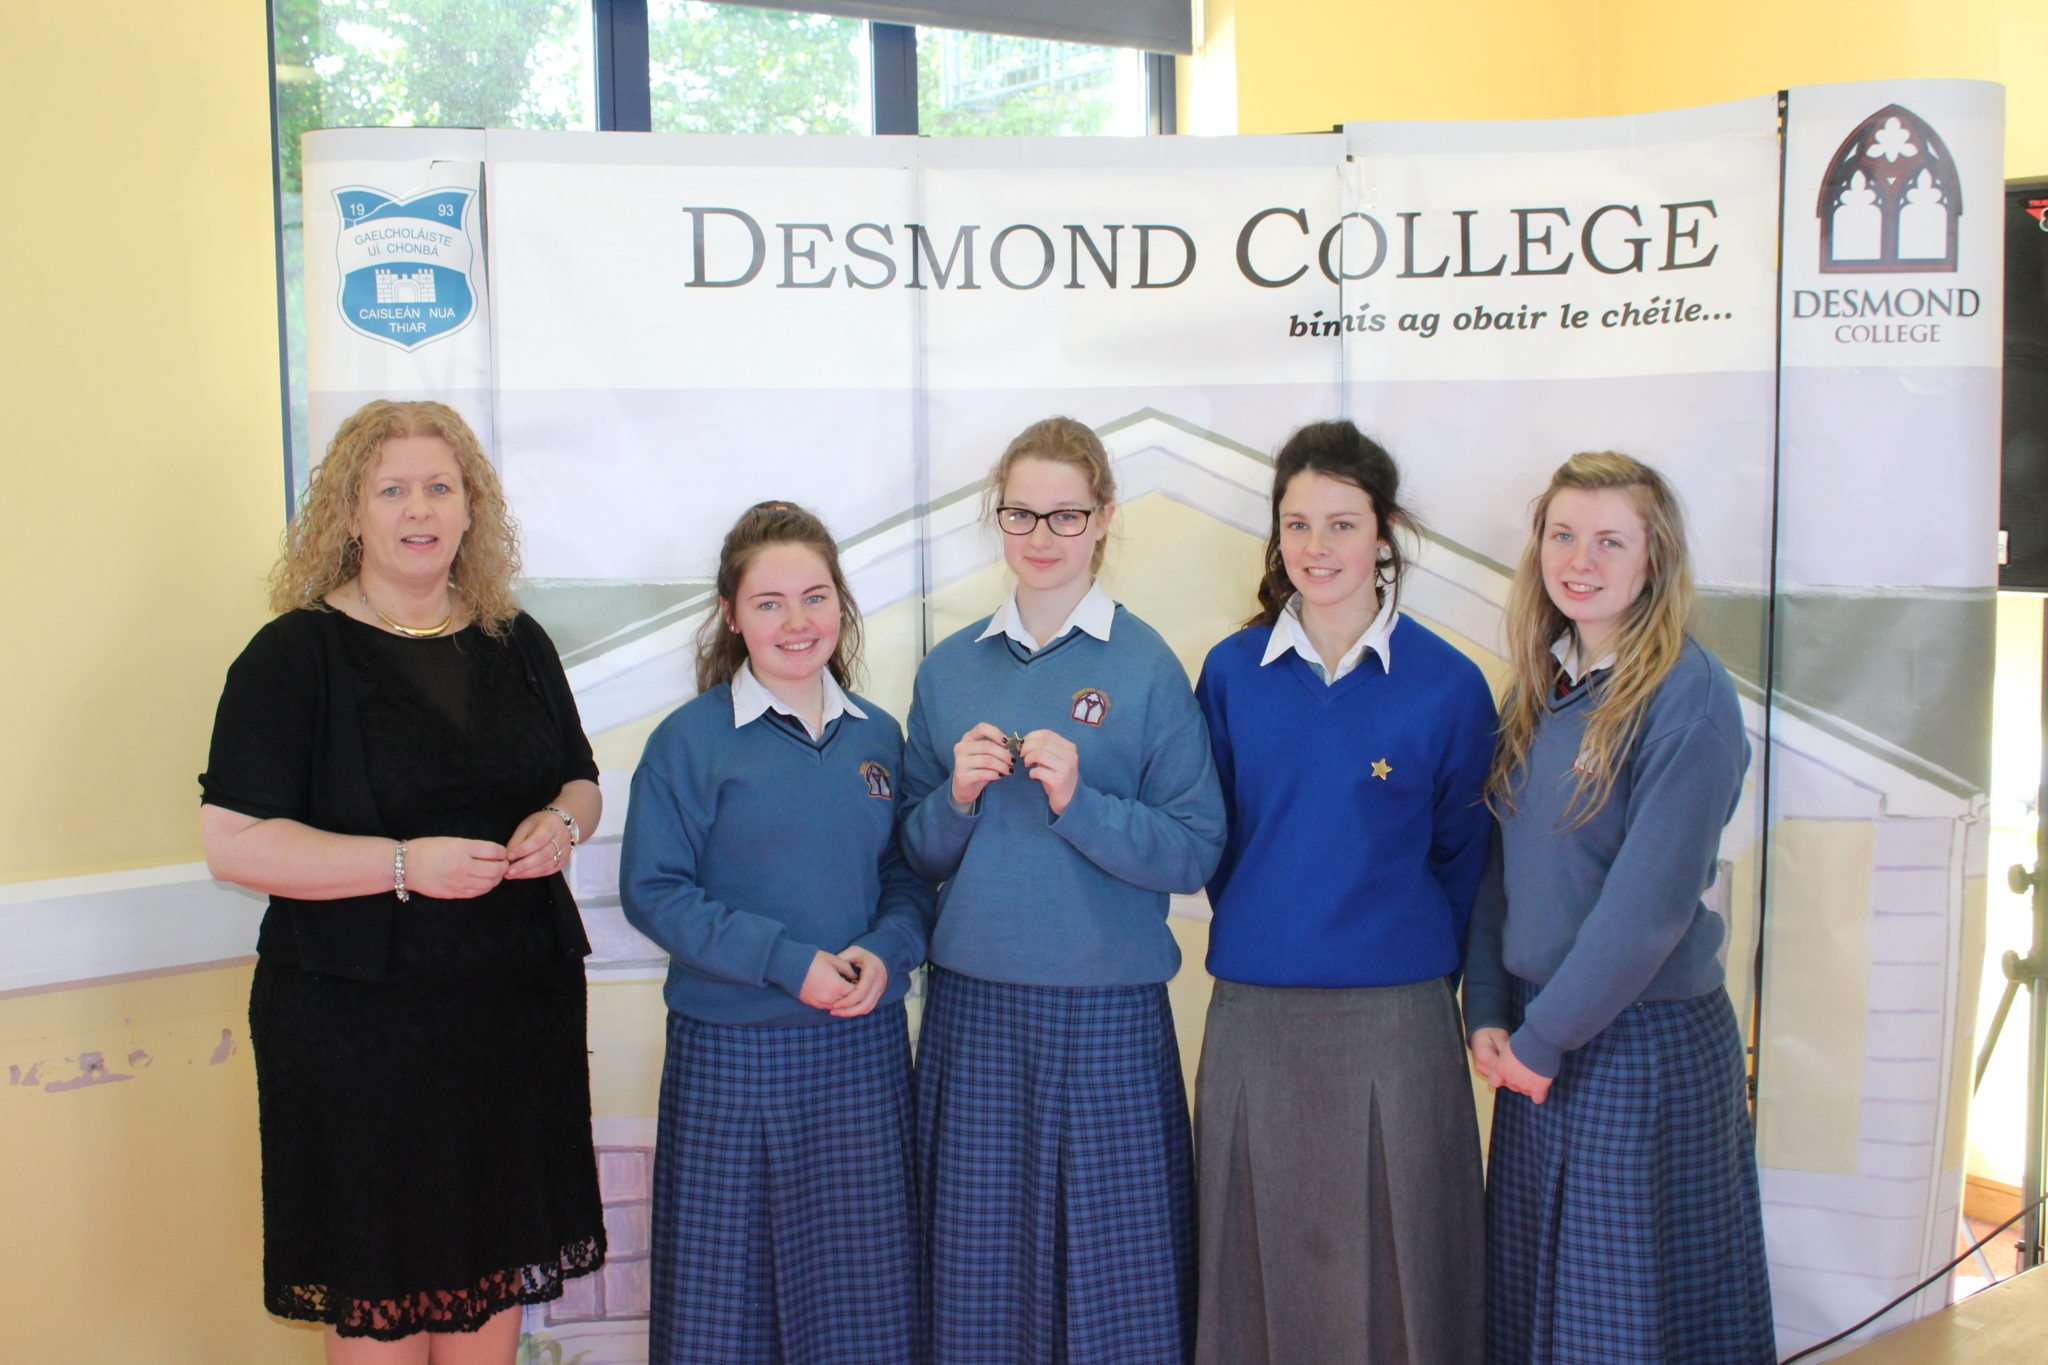 Desmond College Student Awards: May 2015: DEDICATION AND COMMITMENT AWARDS: 5th Year: Ms Gavin Barry with Terri Keane, Eileen Ennulat, Leah Kelly and Julie Cantillon